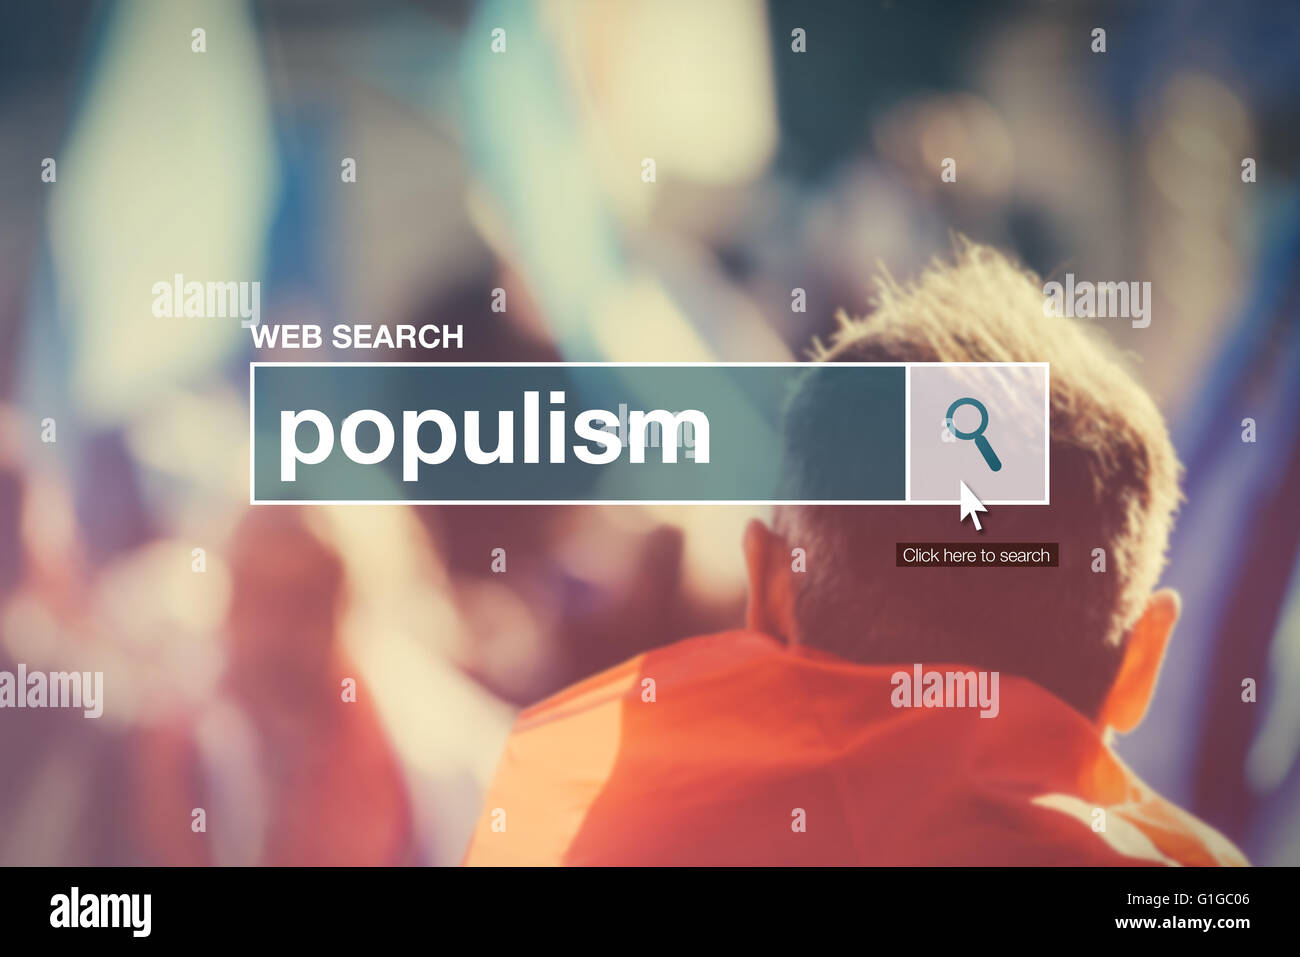 Web search bar glossary term - populism definition in internet glossary. - Stock Image